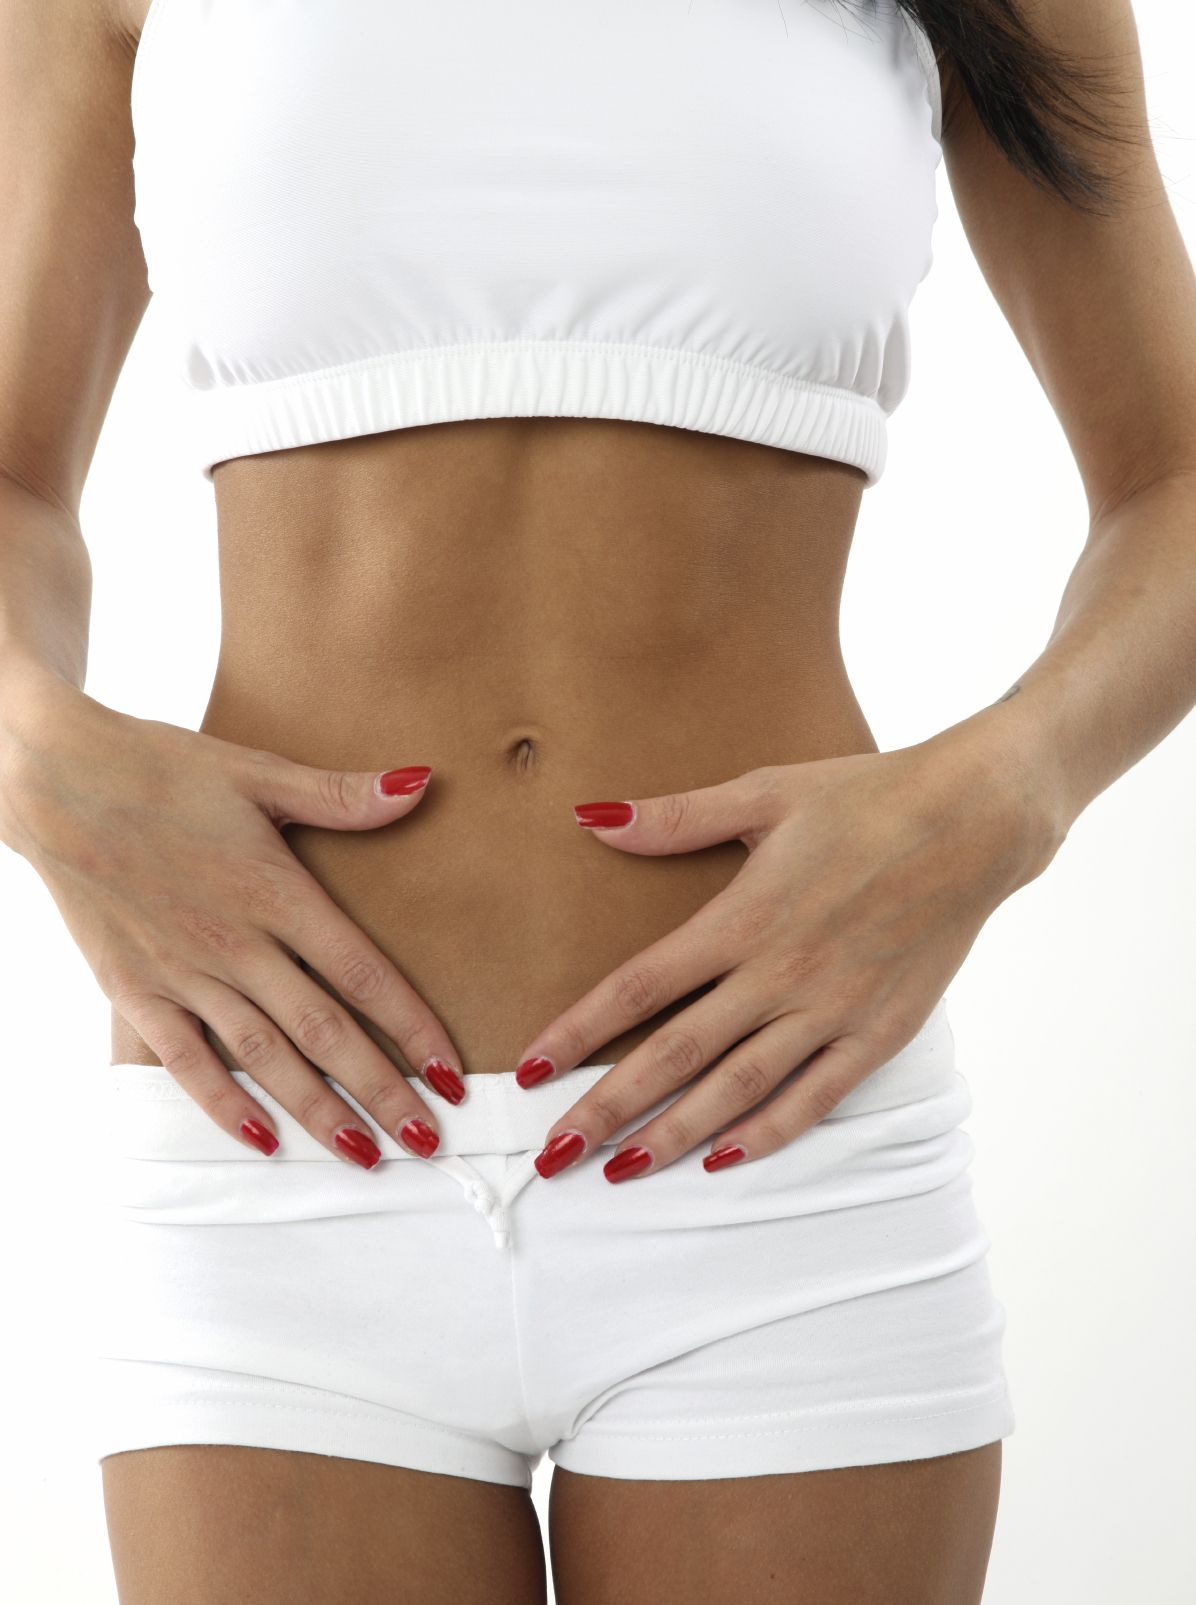 Weird and wonderful ways to lose weight image 4